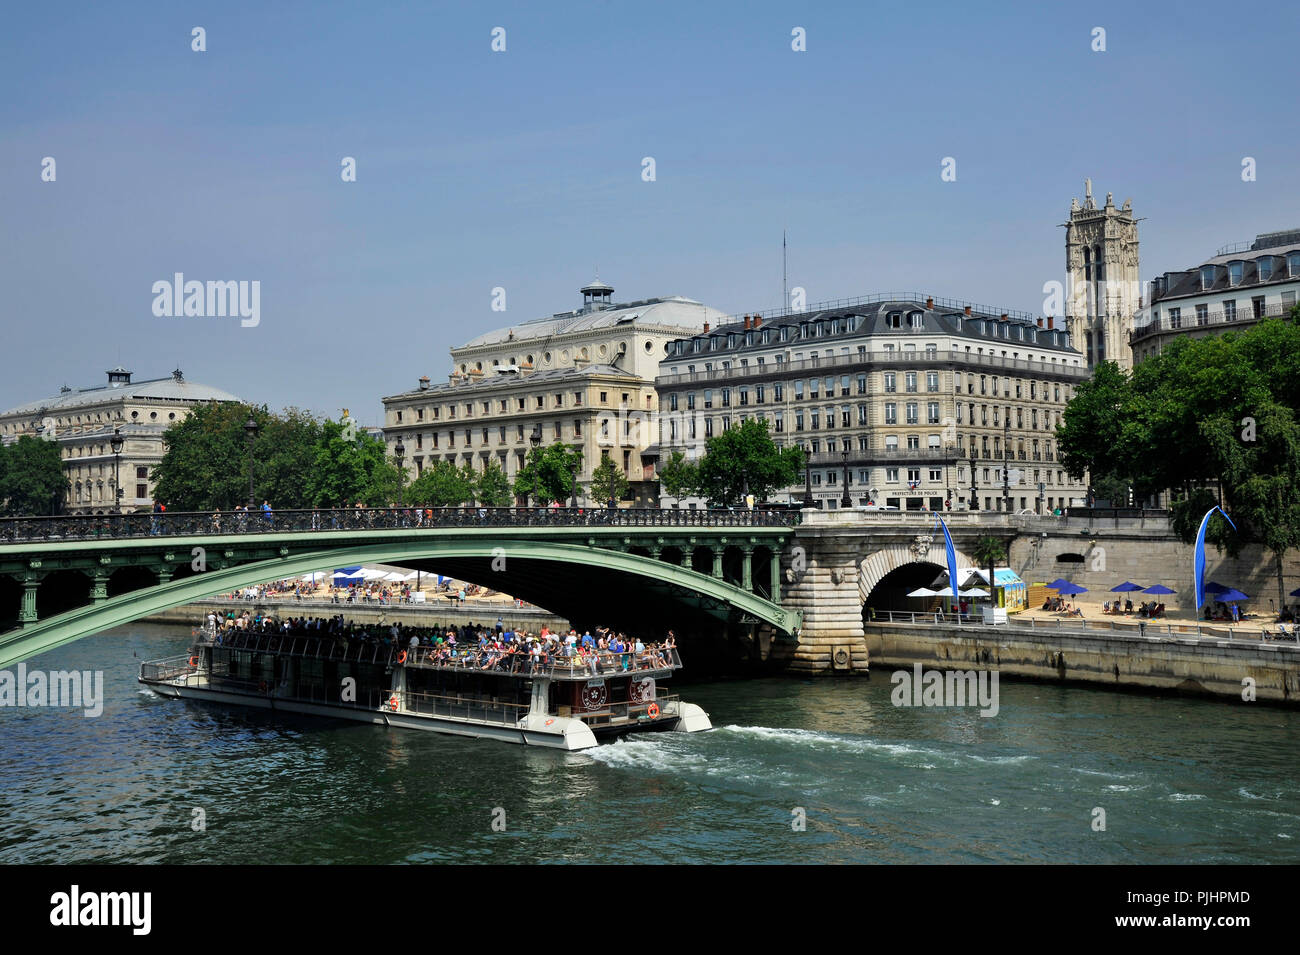 France, Paris City, riverboat carrying visitors on the Seine under the Notre-Dame bridge. - Stock Image